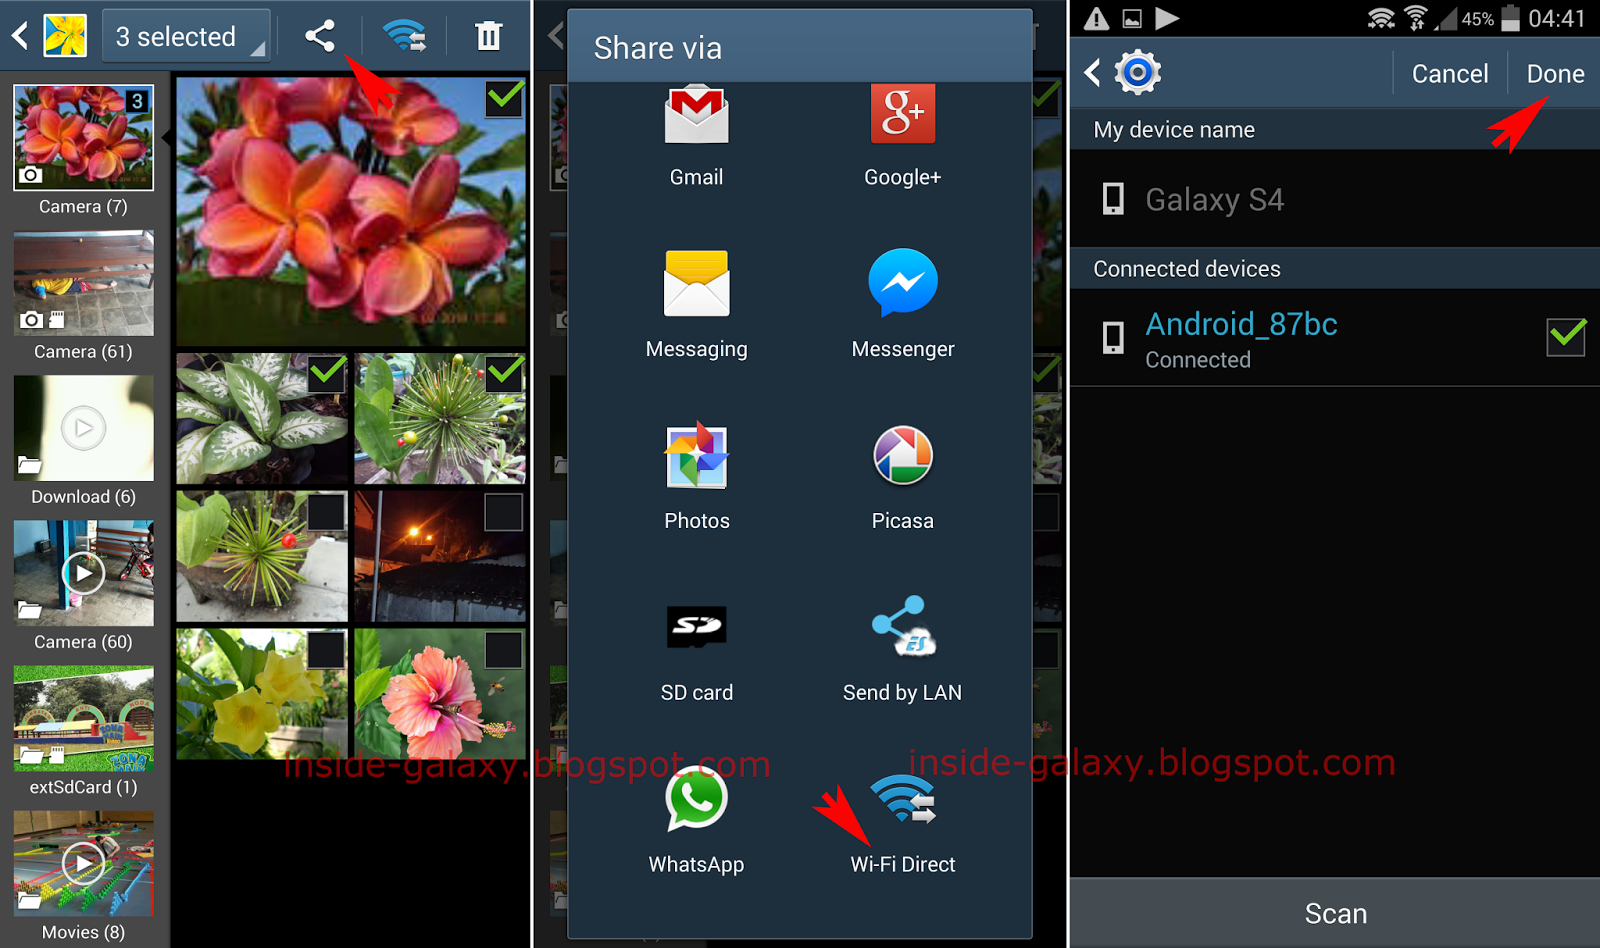 Inside Galaxy: Samsung Galaxy S4: How to Enable and Use Wi-Fi Direct